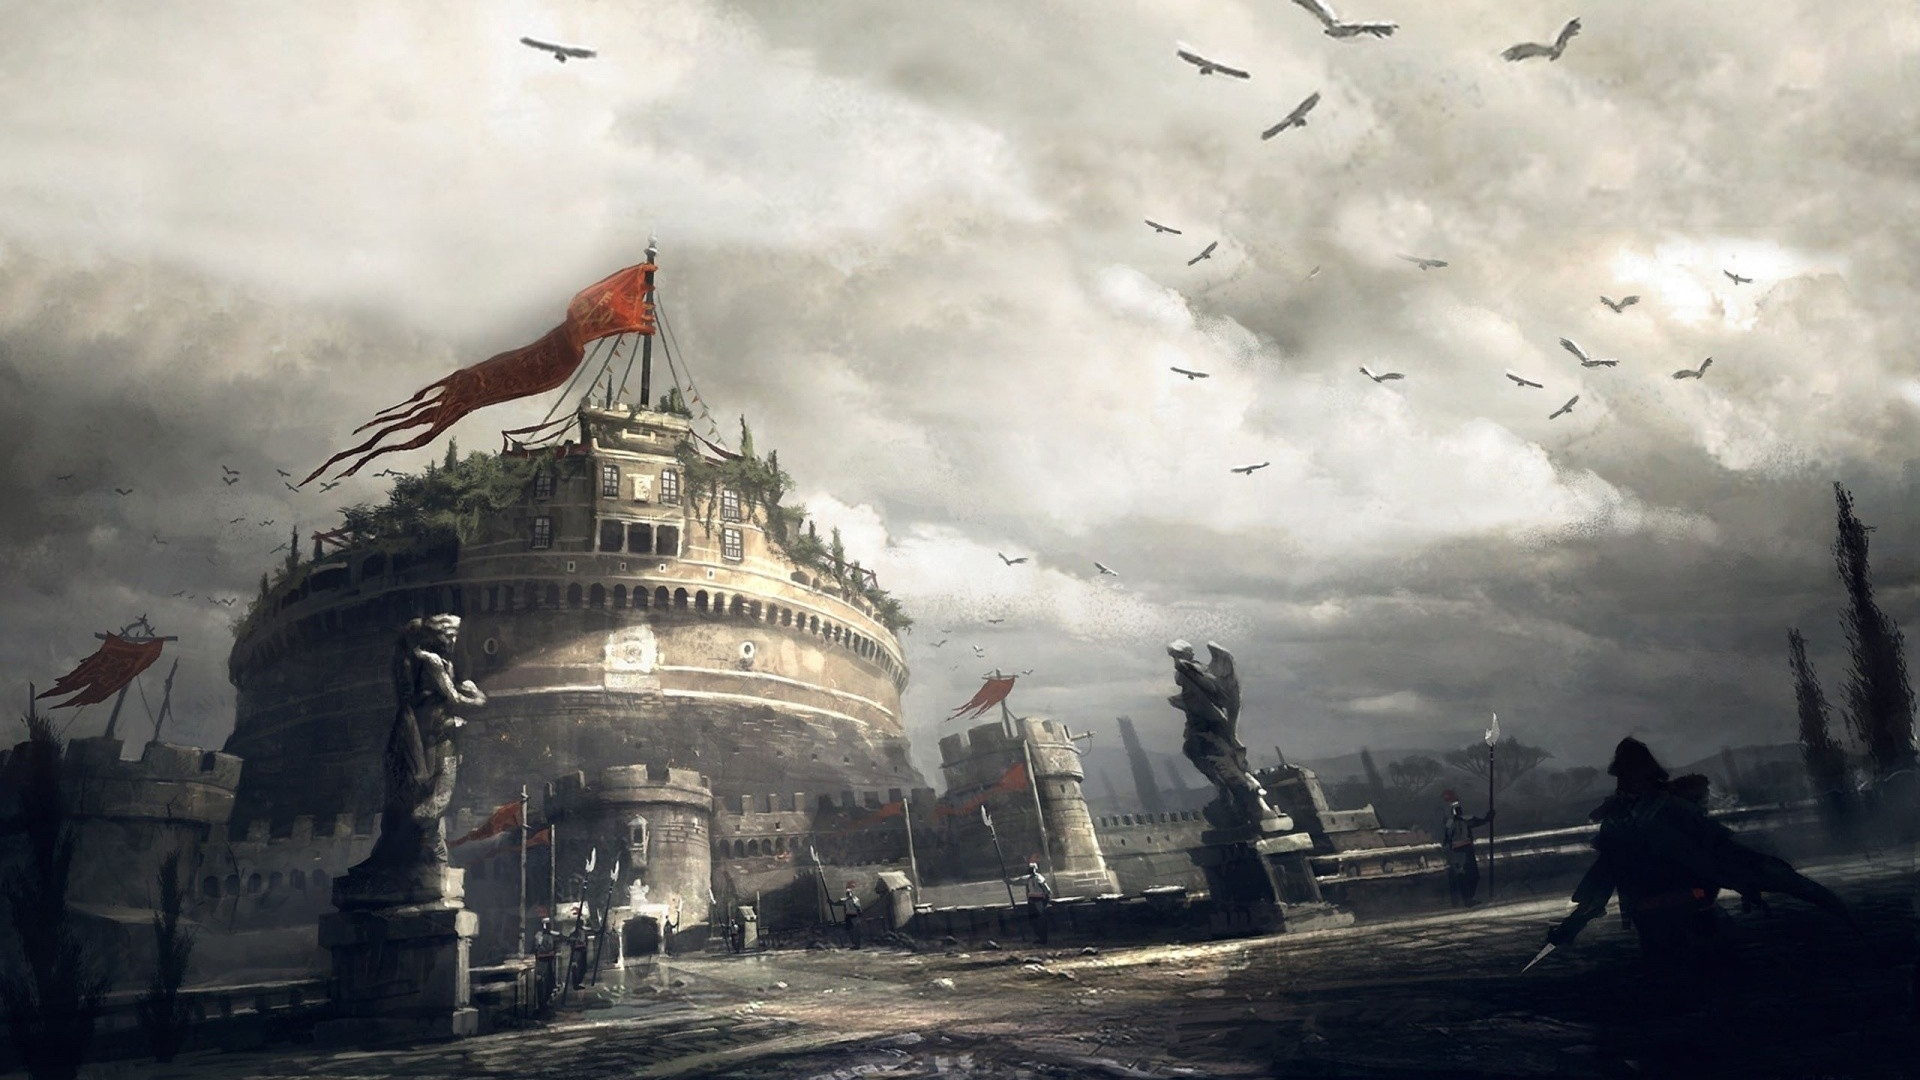 assassins_creed_birds_sky_clouds_house_f